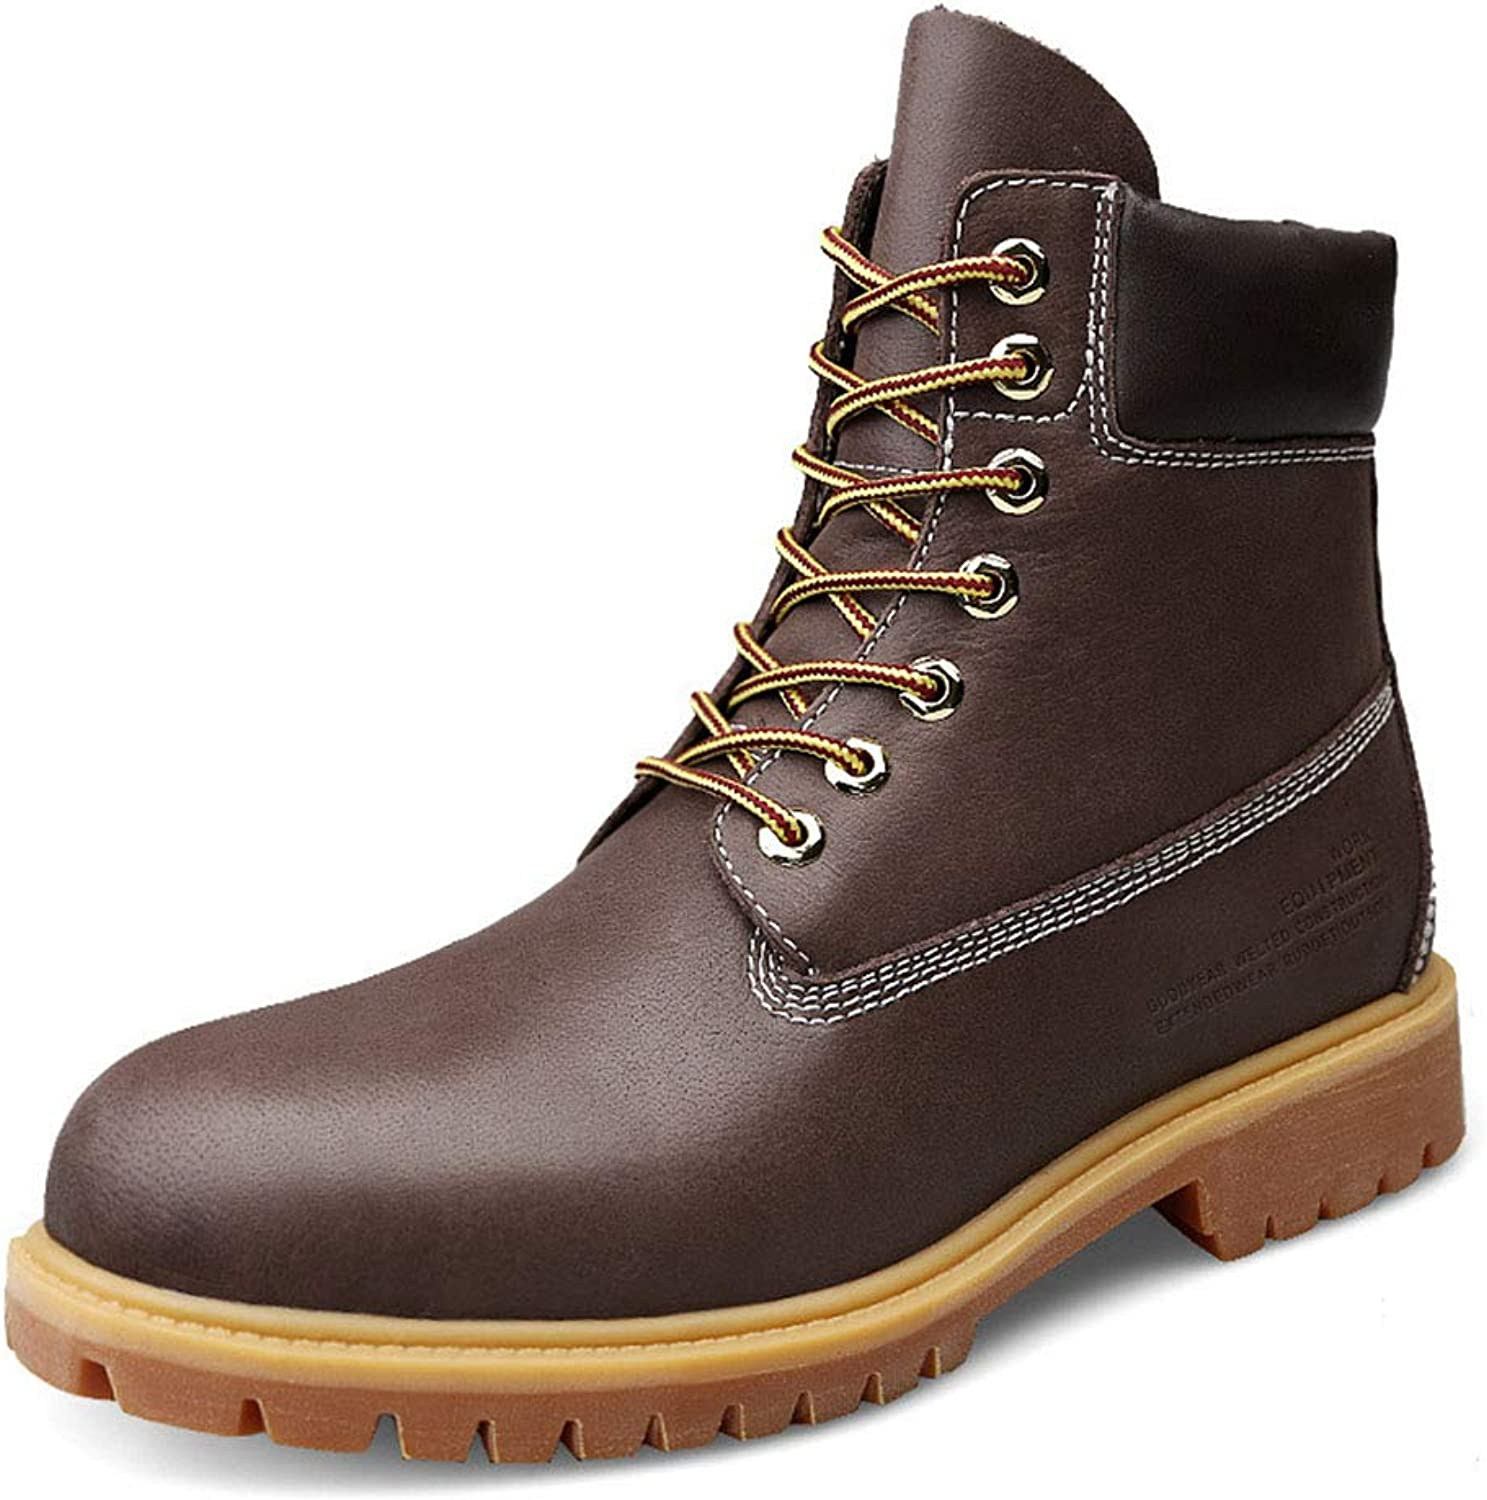 Men's New Boots Fall Winter Leather Martin Boots Plus Velvet Keep Warm High-top Tooling Martin Boots Non Slip Shockproof Camping Booties (color   B, Size   44)